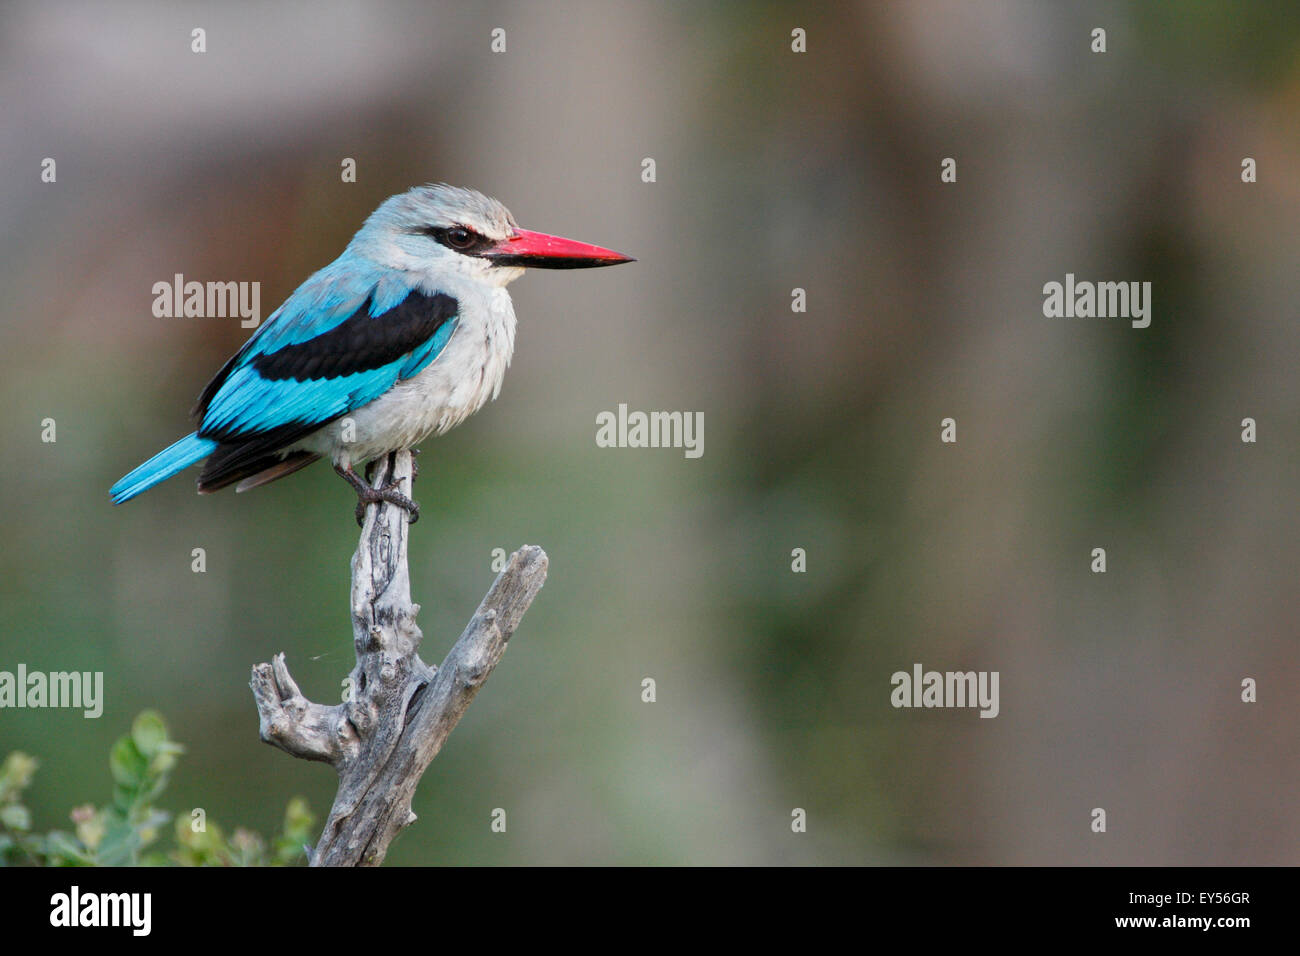 Angola Kingfisher on a branch - Kruger South Africa - Stock Image